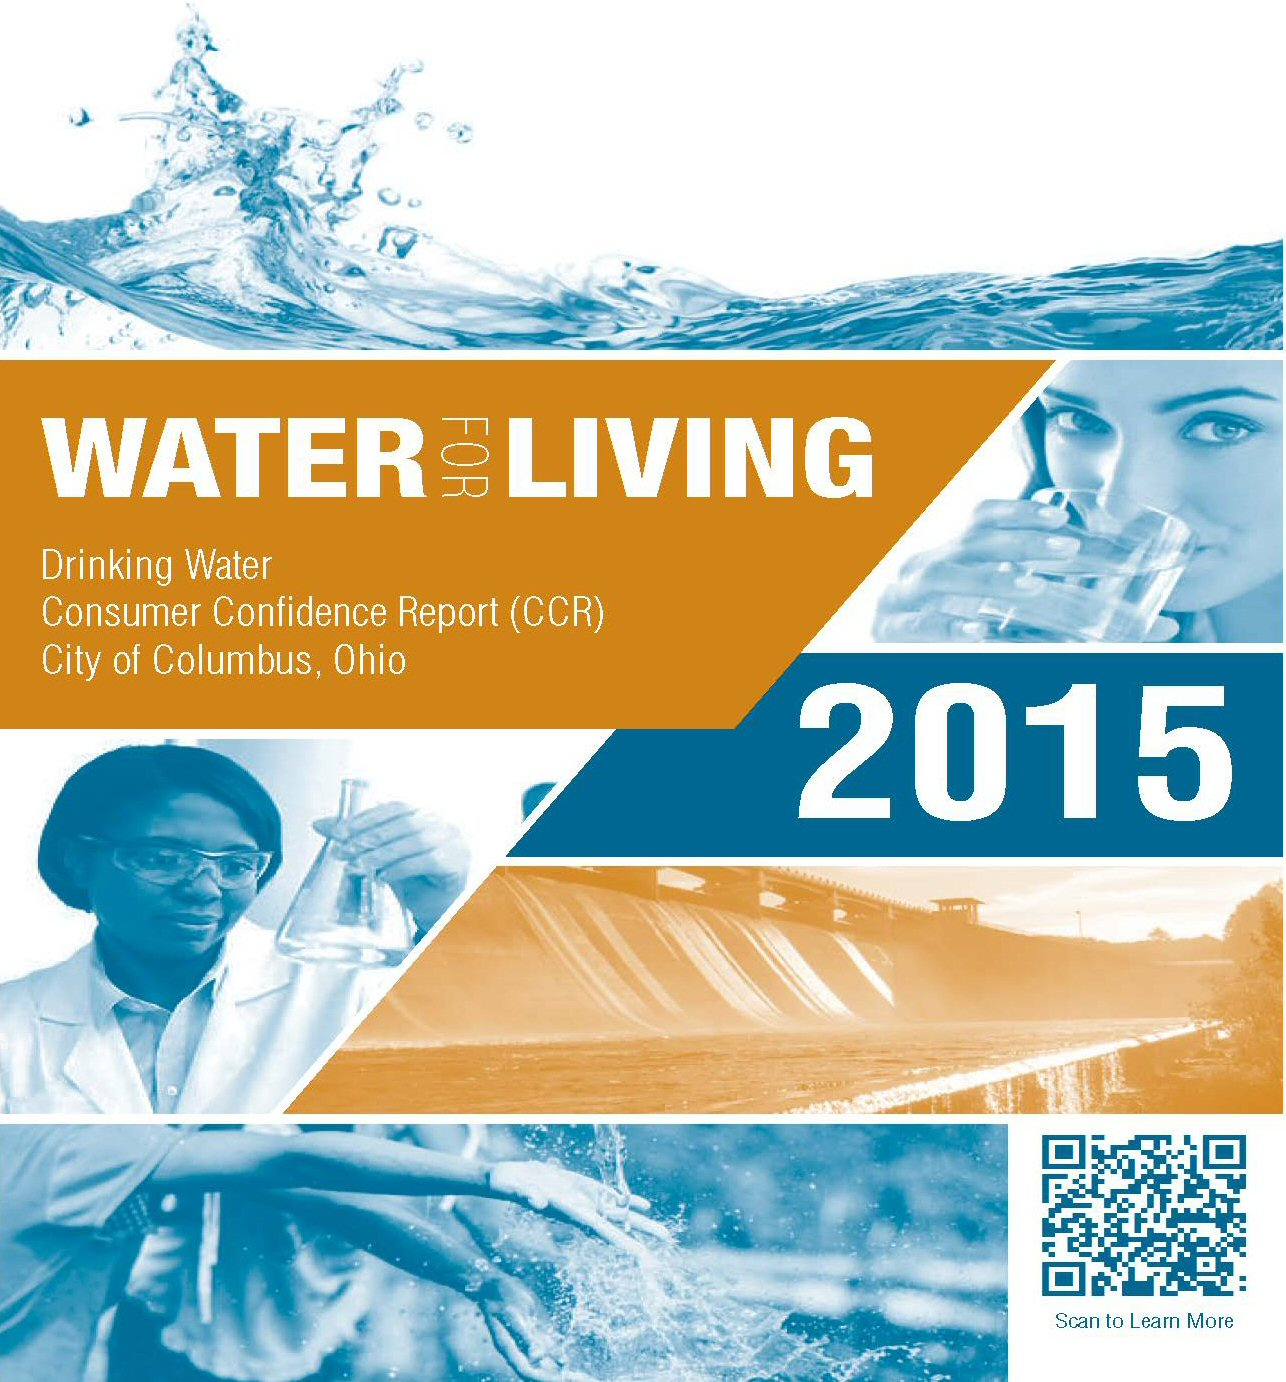 2015 CCR - Water for Living